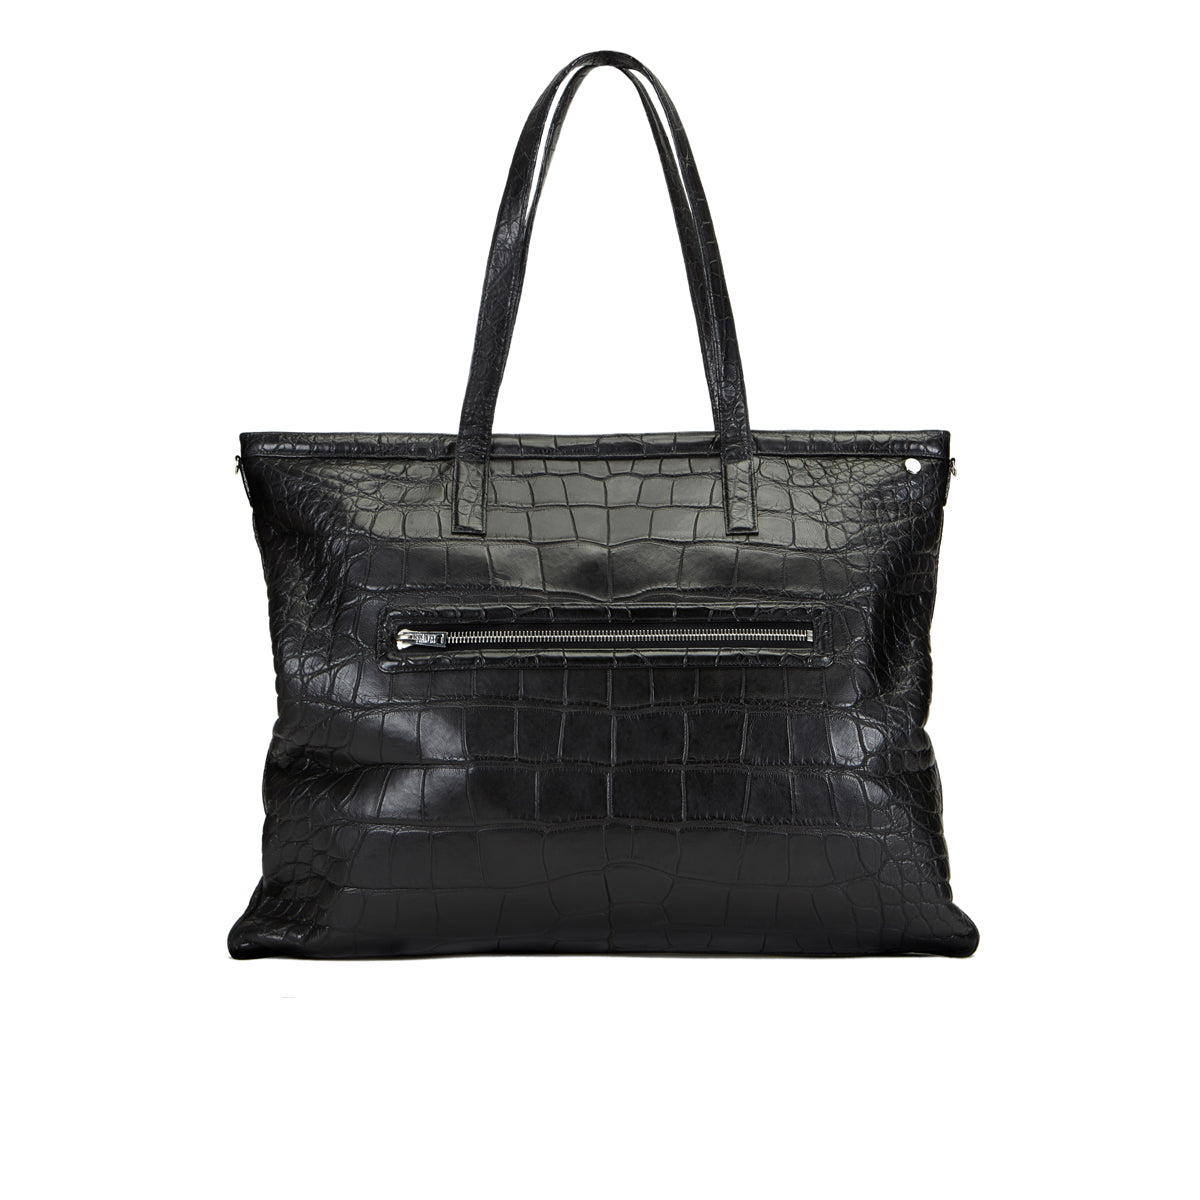 Minol Shopper Tote - Black Alligator